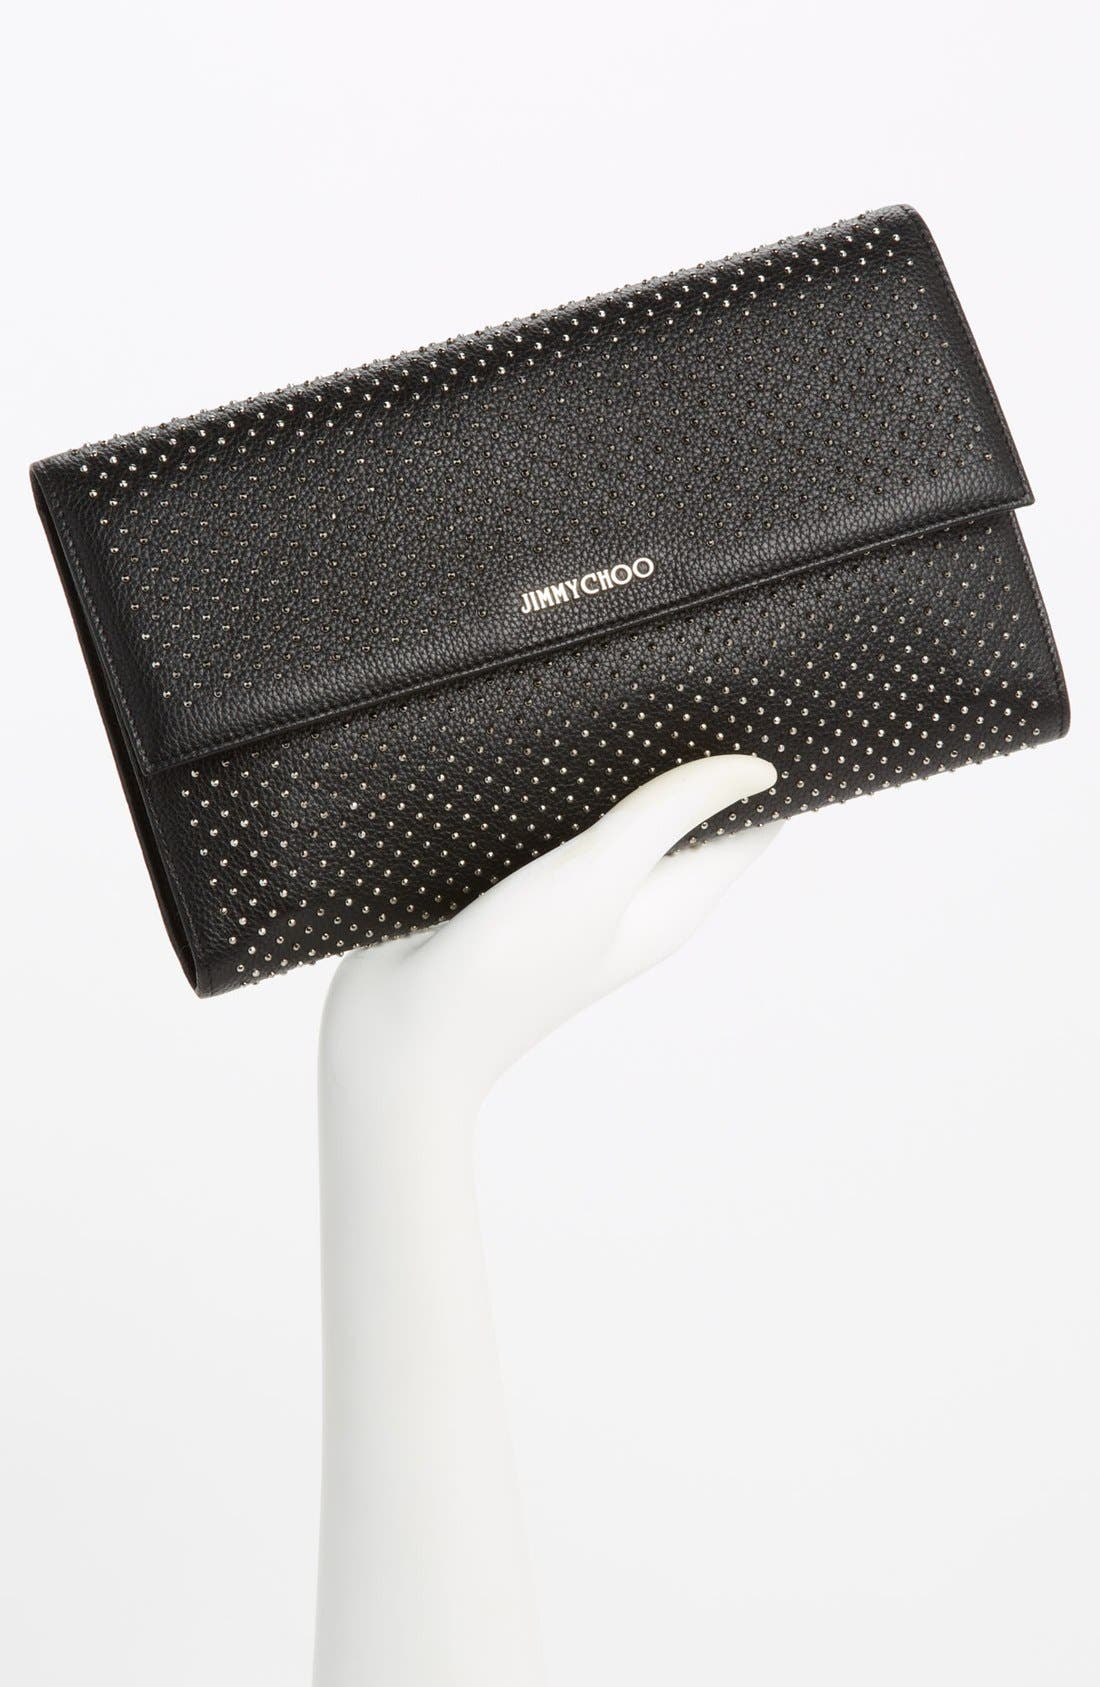 Alternate Image 2  - Jimmy Choo 'Reese - XL' Studded Leather Clutch